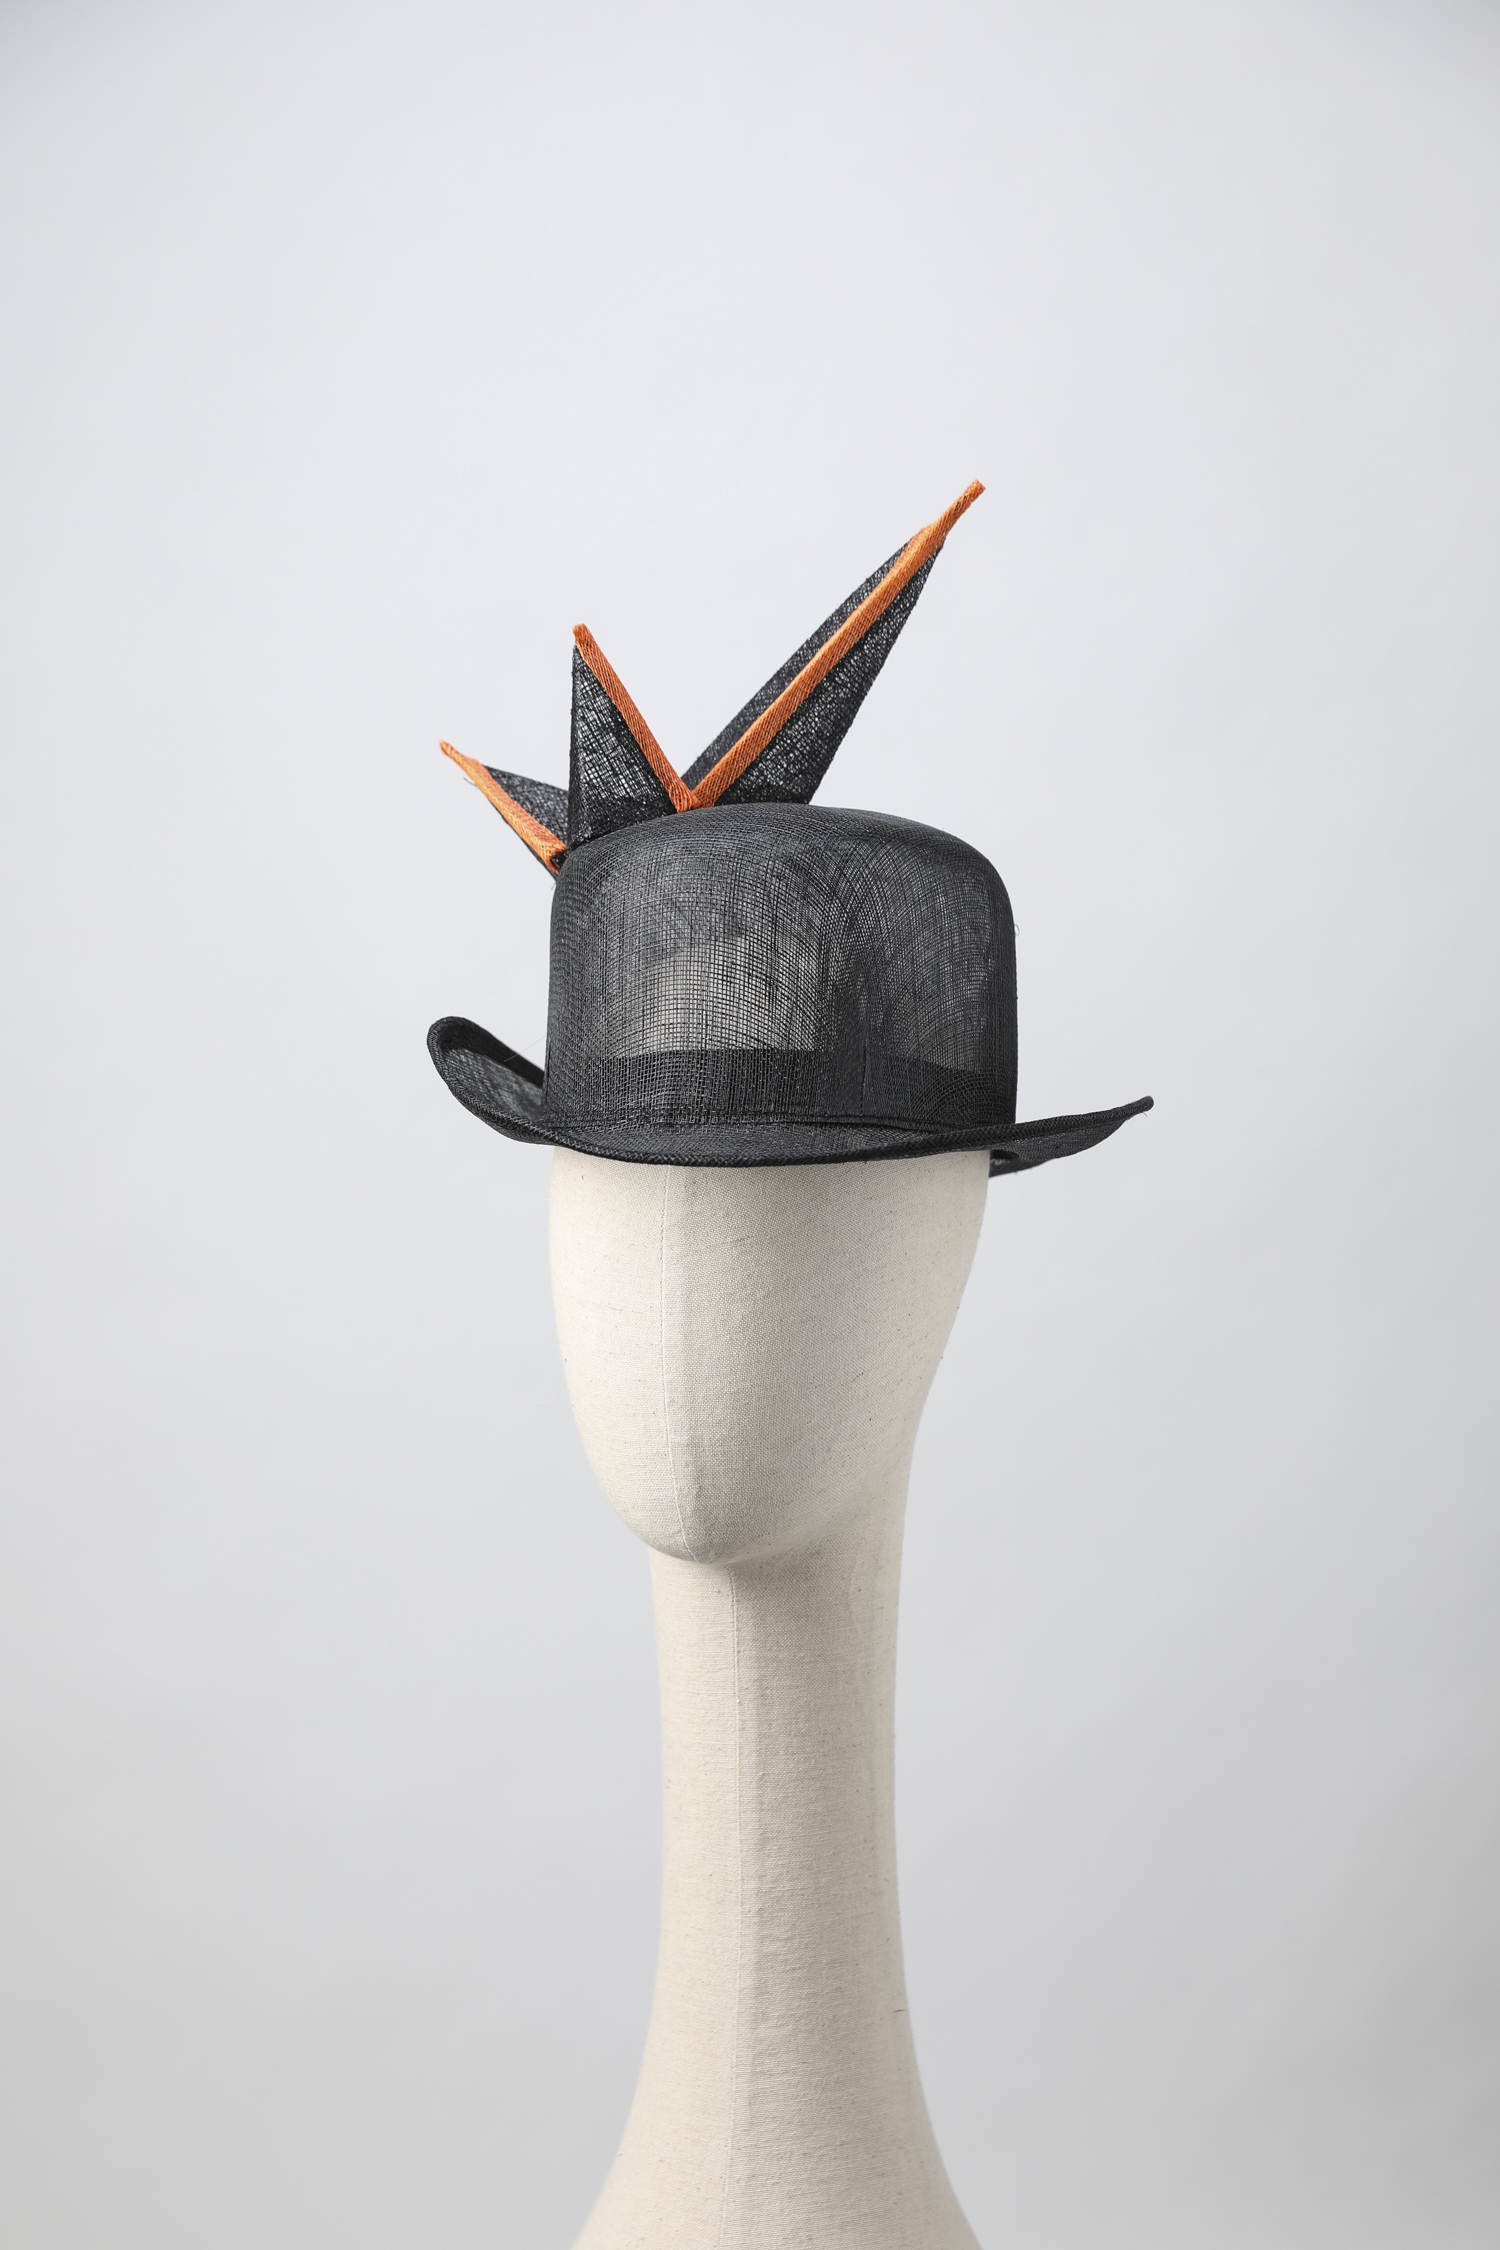 Copy of Jaycow Millinery by Jay Cheng Sample Stock 2019 (59).jpg